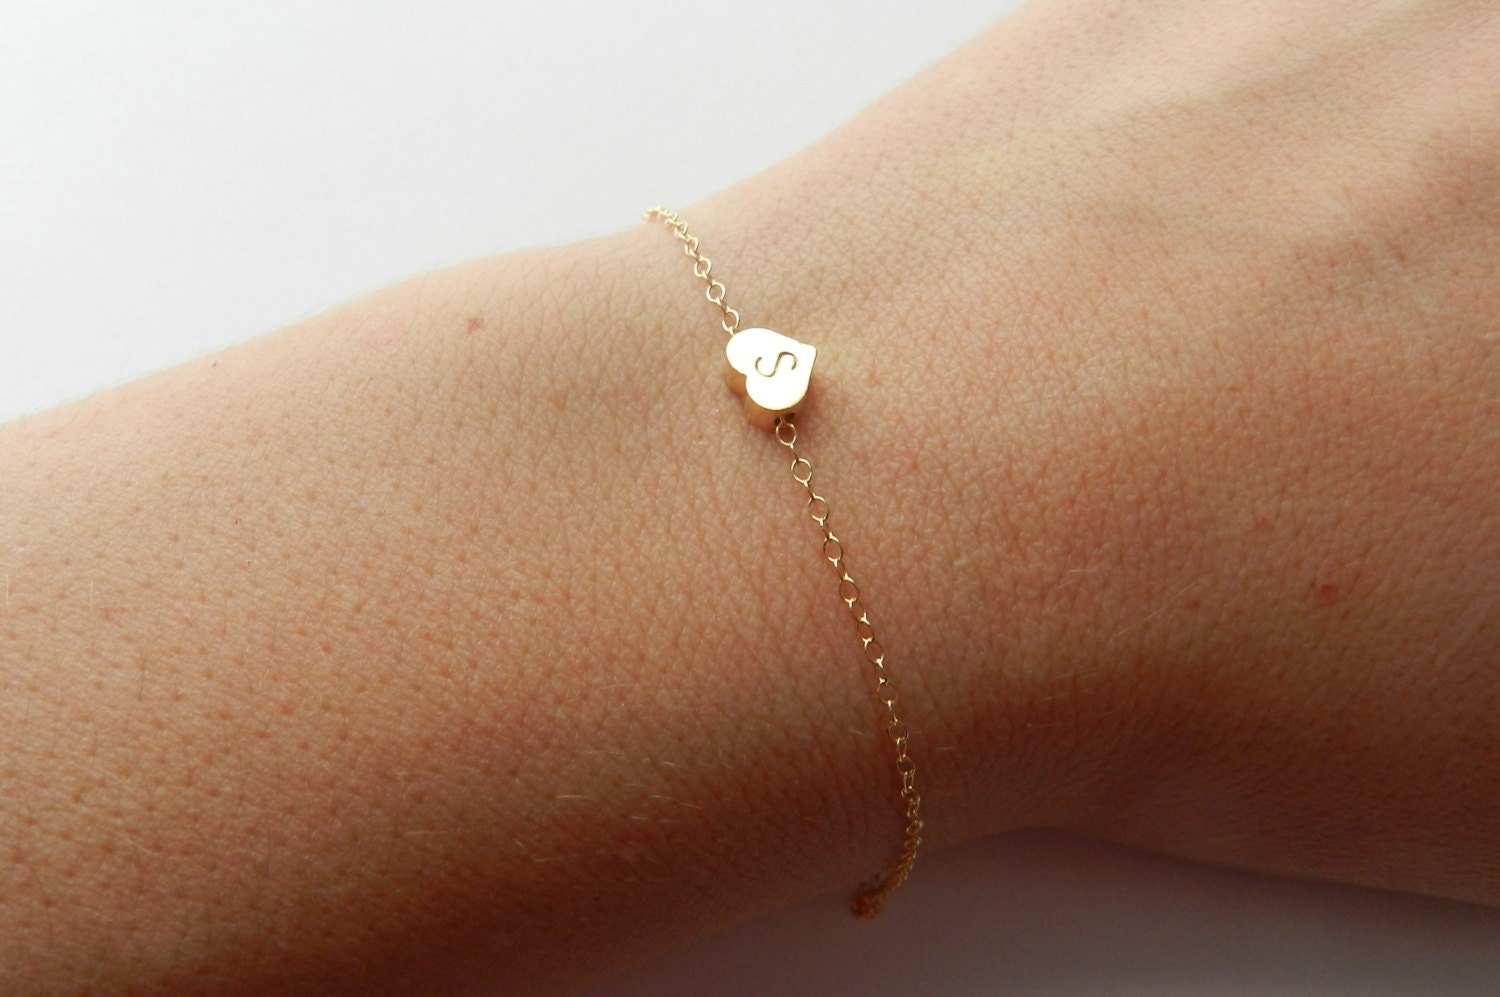 Katie. Handstamped heart bracelet on 14k gold filled chain